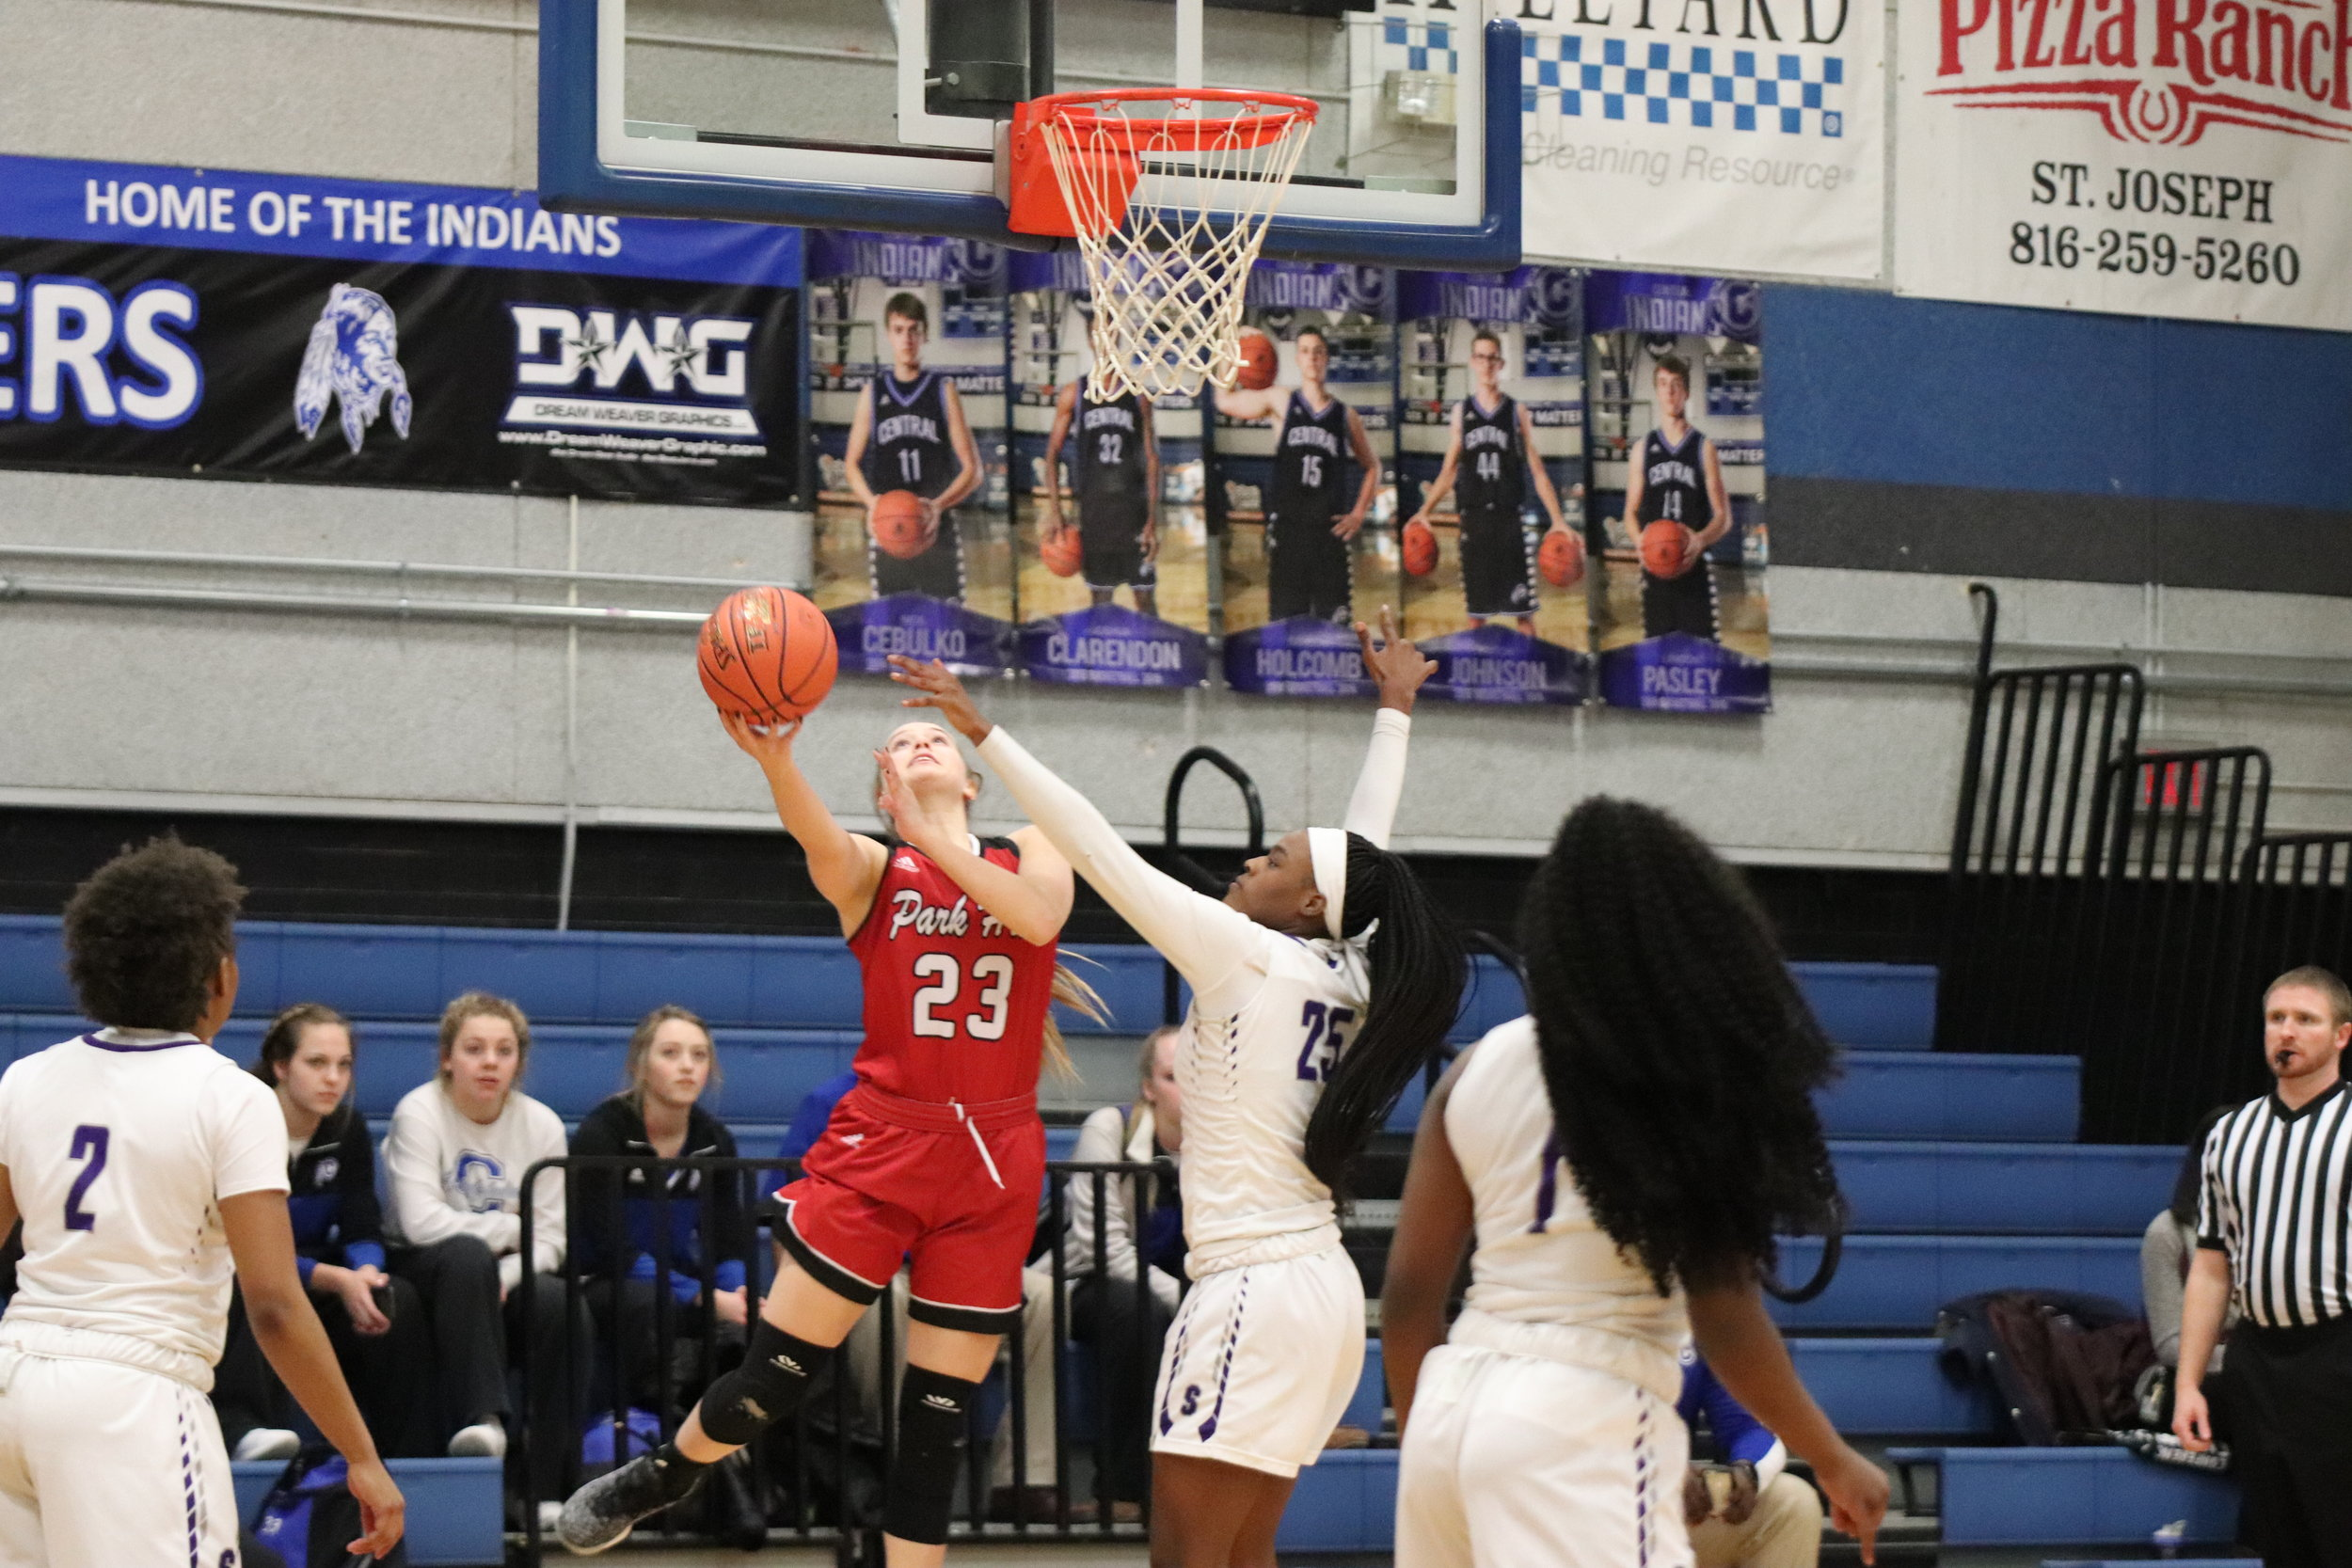 CODY THORN/Citizen photo  Park Hill's Hannah Graves, left, goes up for layup while being defended by Park Hill South's Alecia Westbrook during a Class 5 District 16 game on Monday, Feb. 25 in Central High School in St. Joseph.